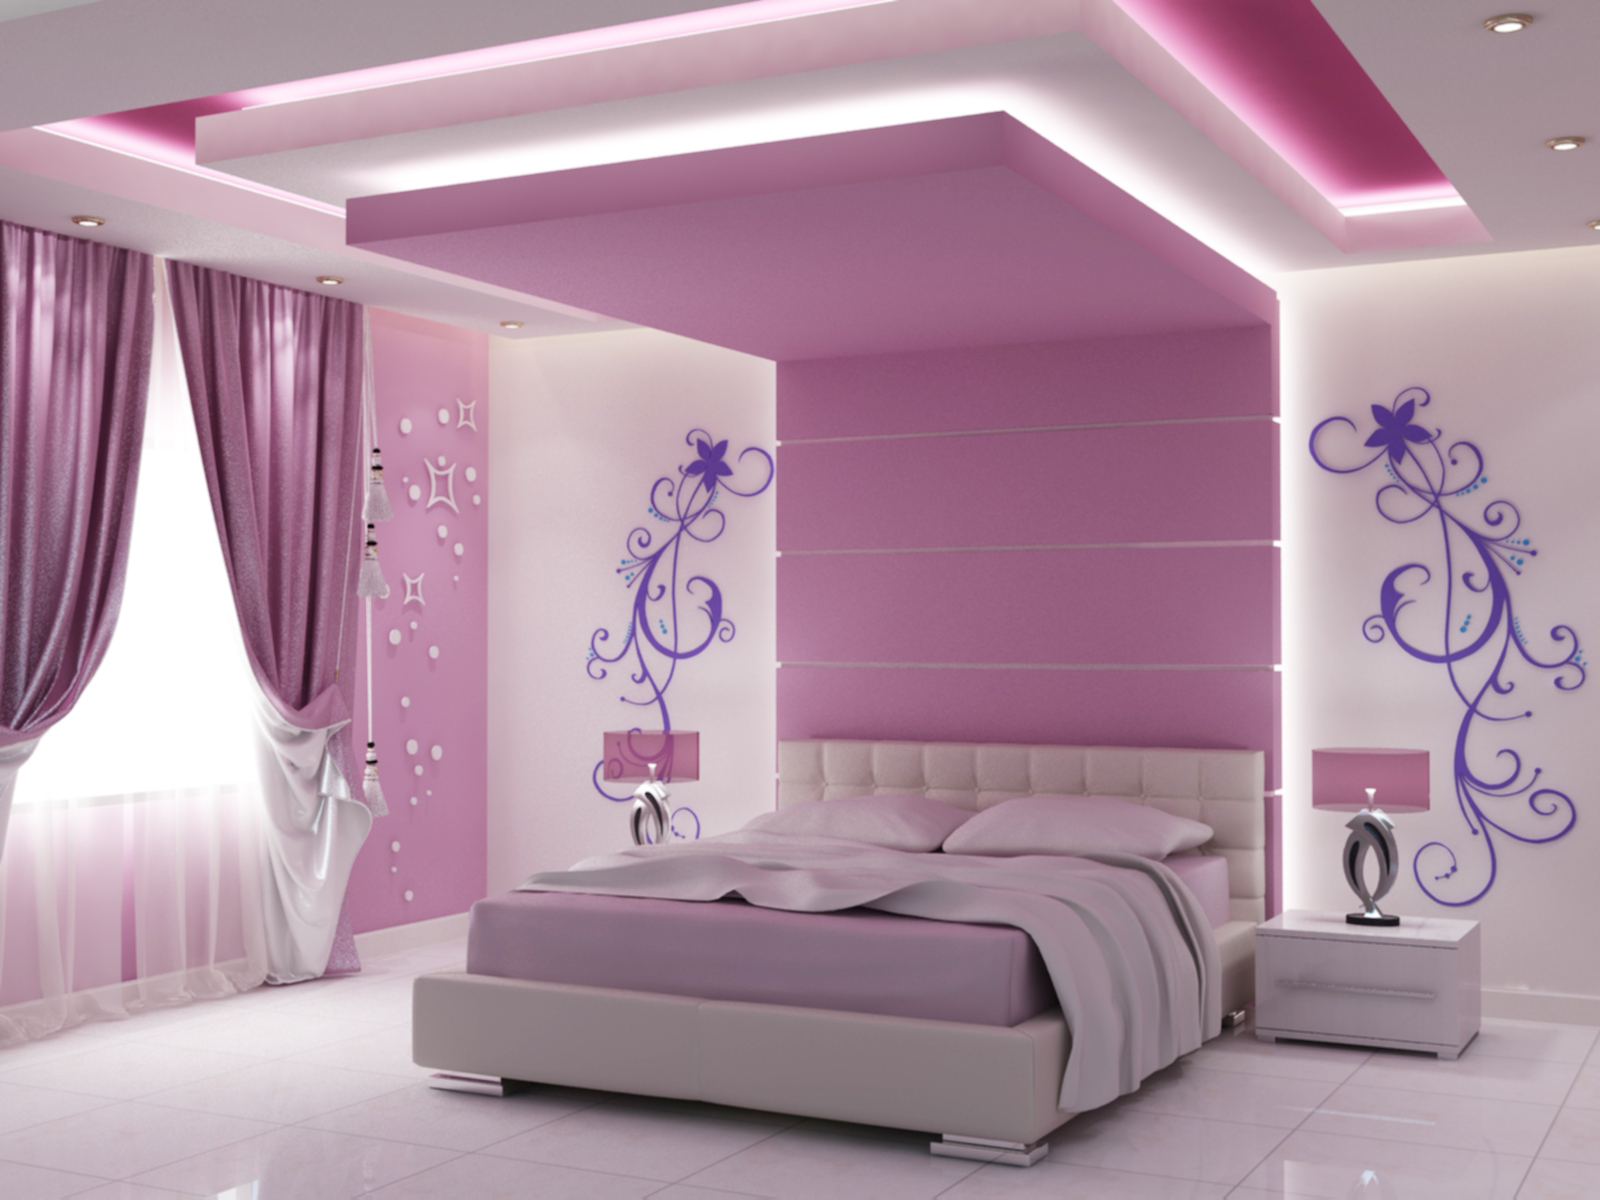 Dwell of decor 25 latest wall and ceiling gypsum board designs dwell of decor amipublicfo Image collections